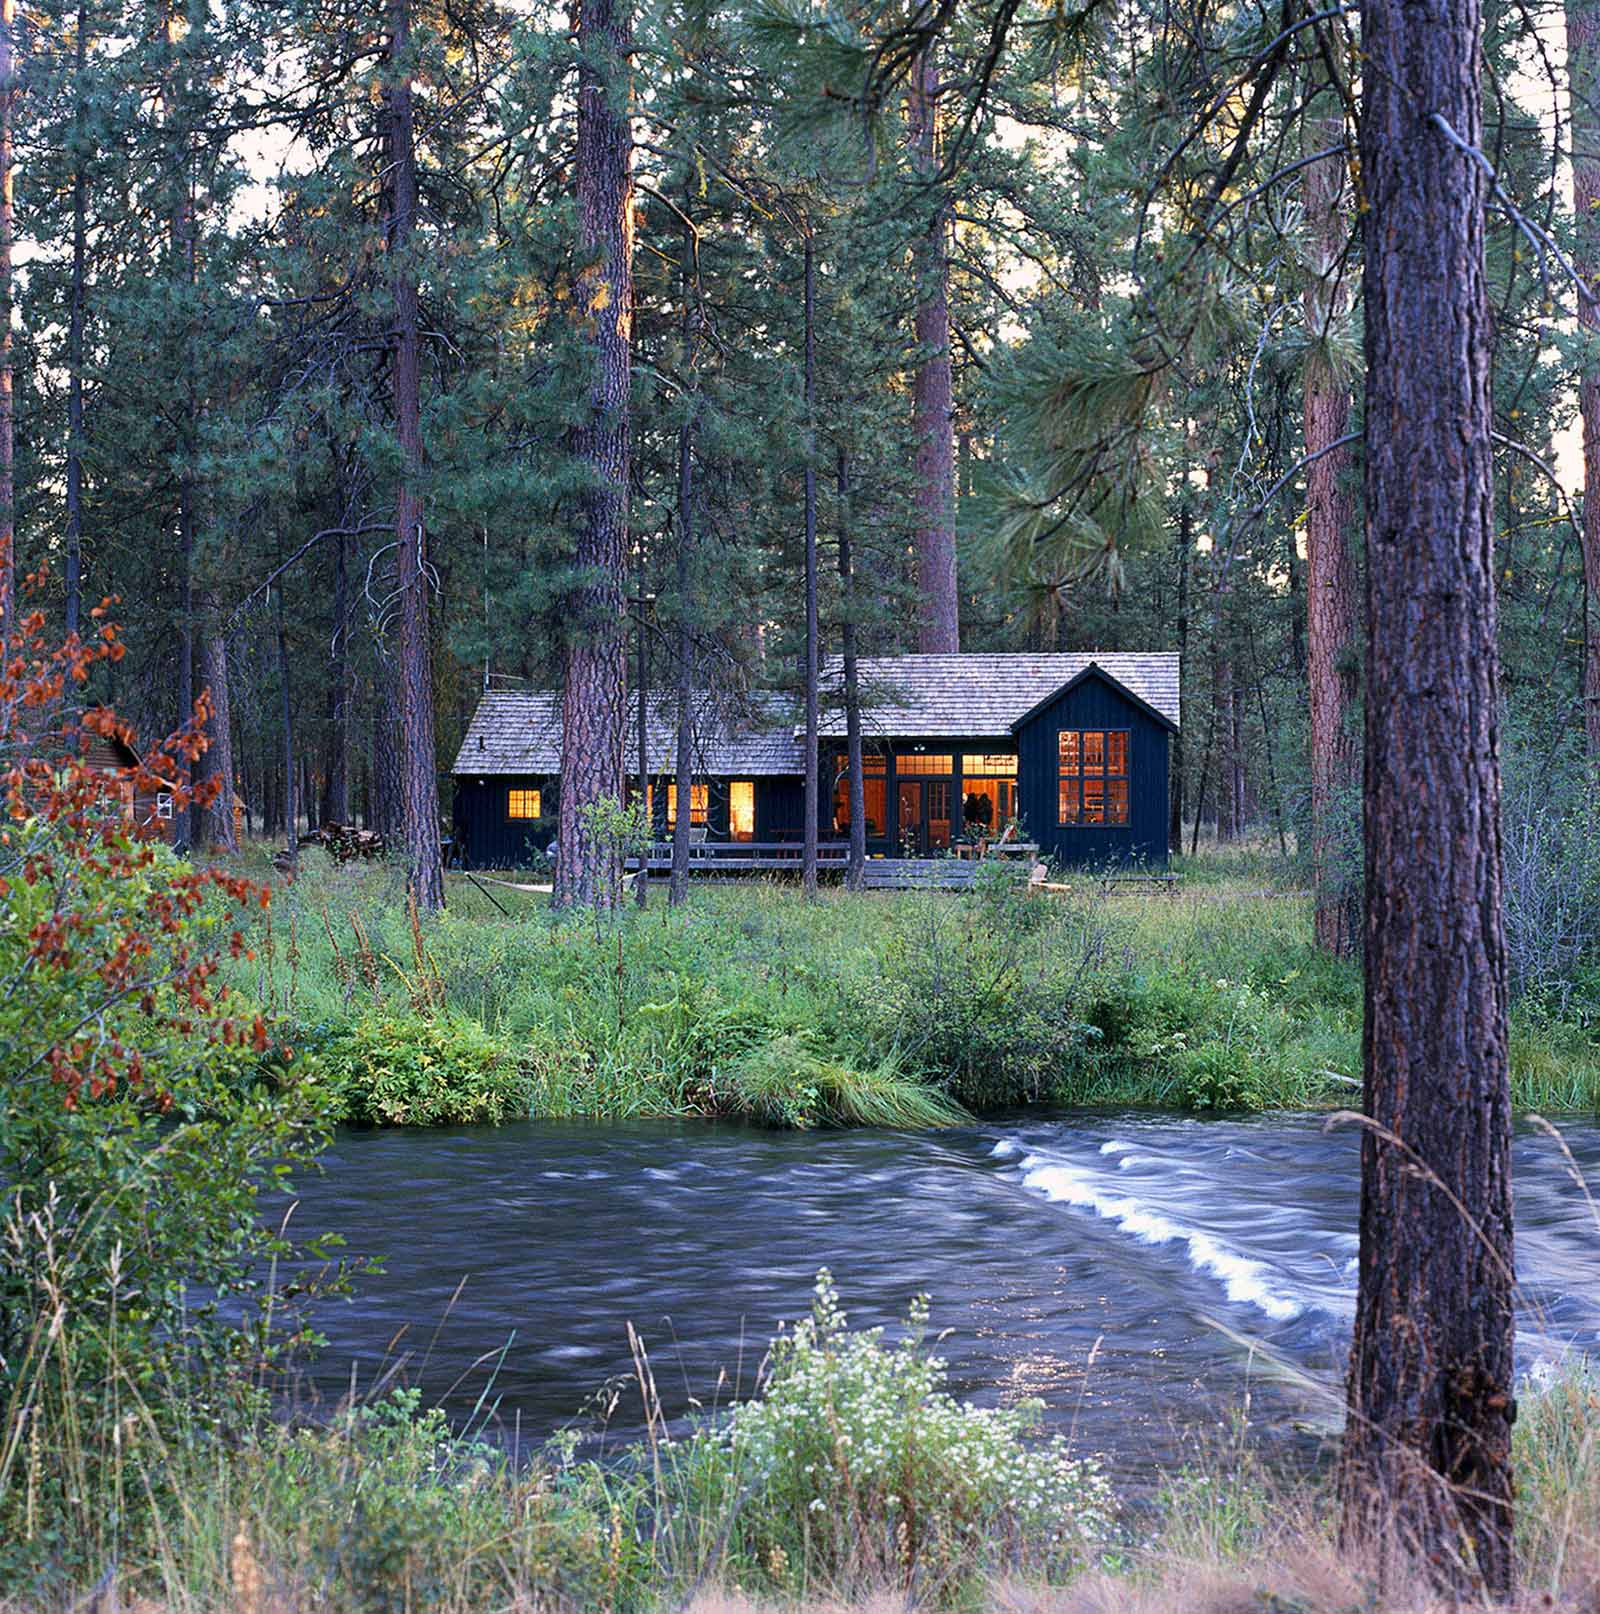 architecture-exterior-cabin-river-forest_w